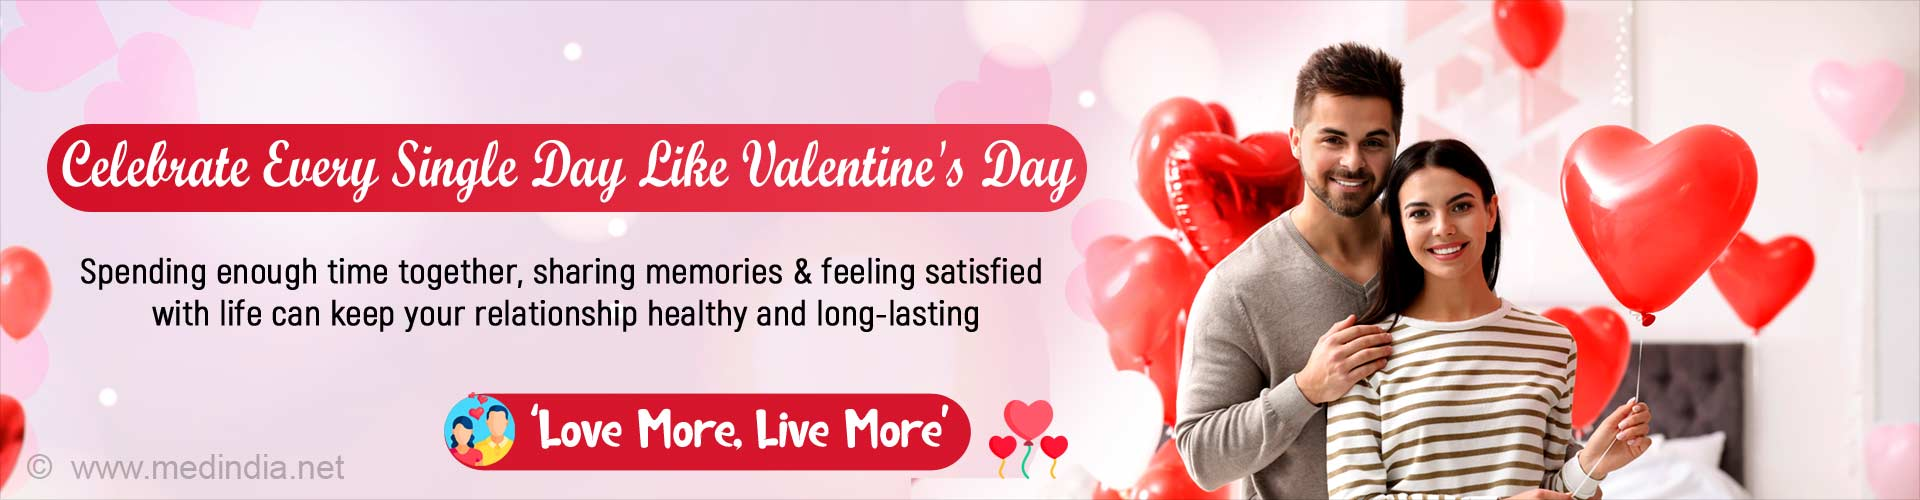 Valentine's Day: Romantic 10 Tips for Maintaining a Long-lasting Relationship